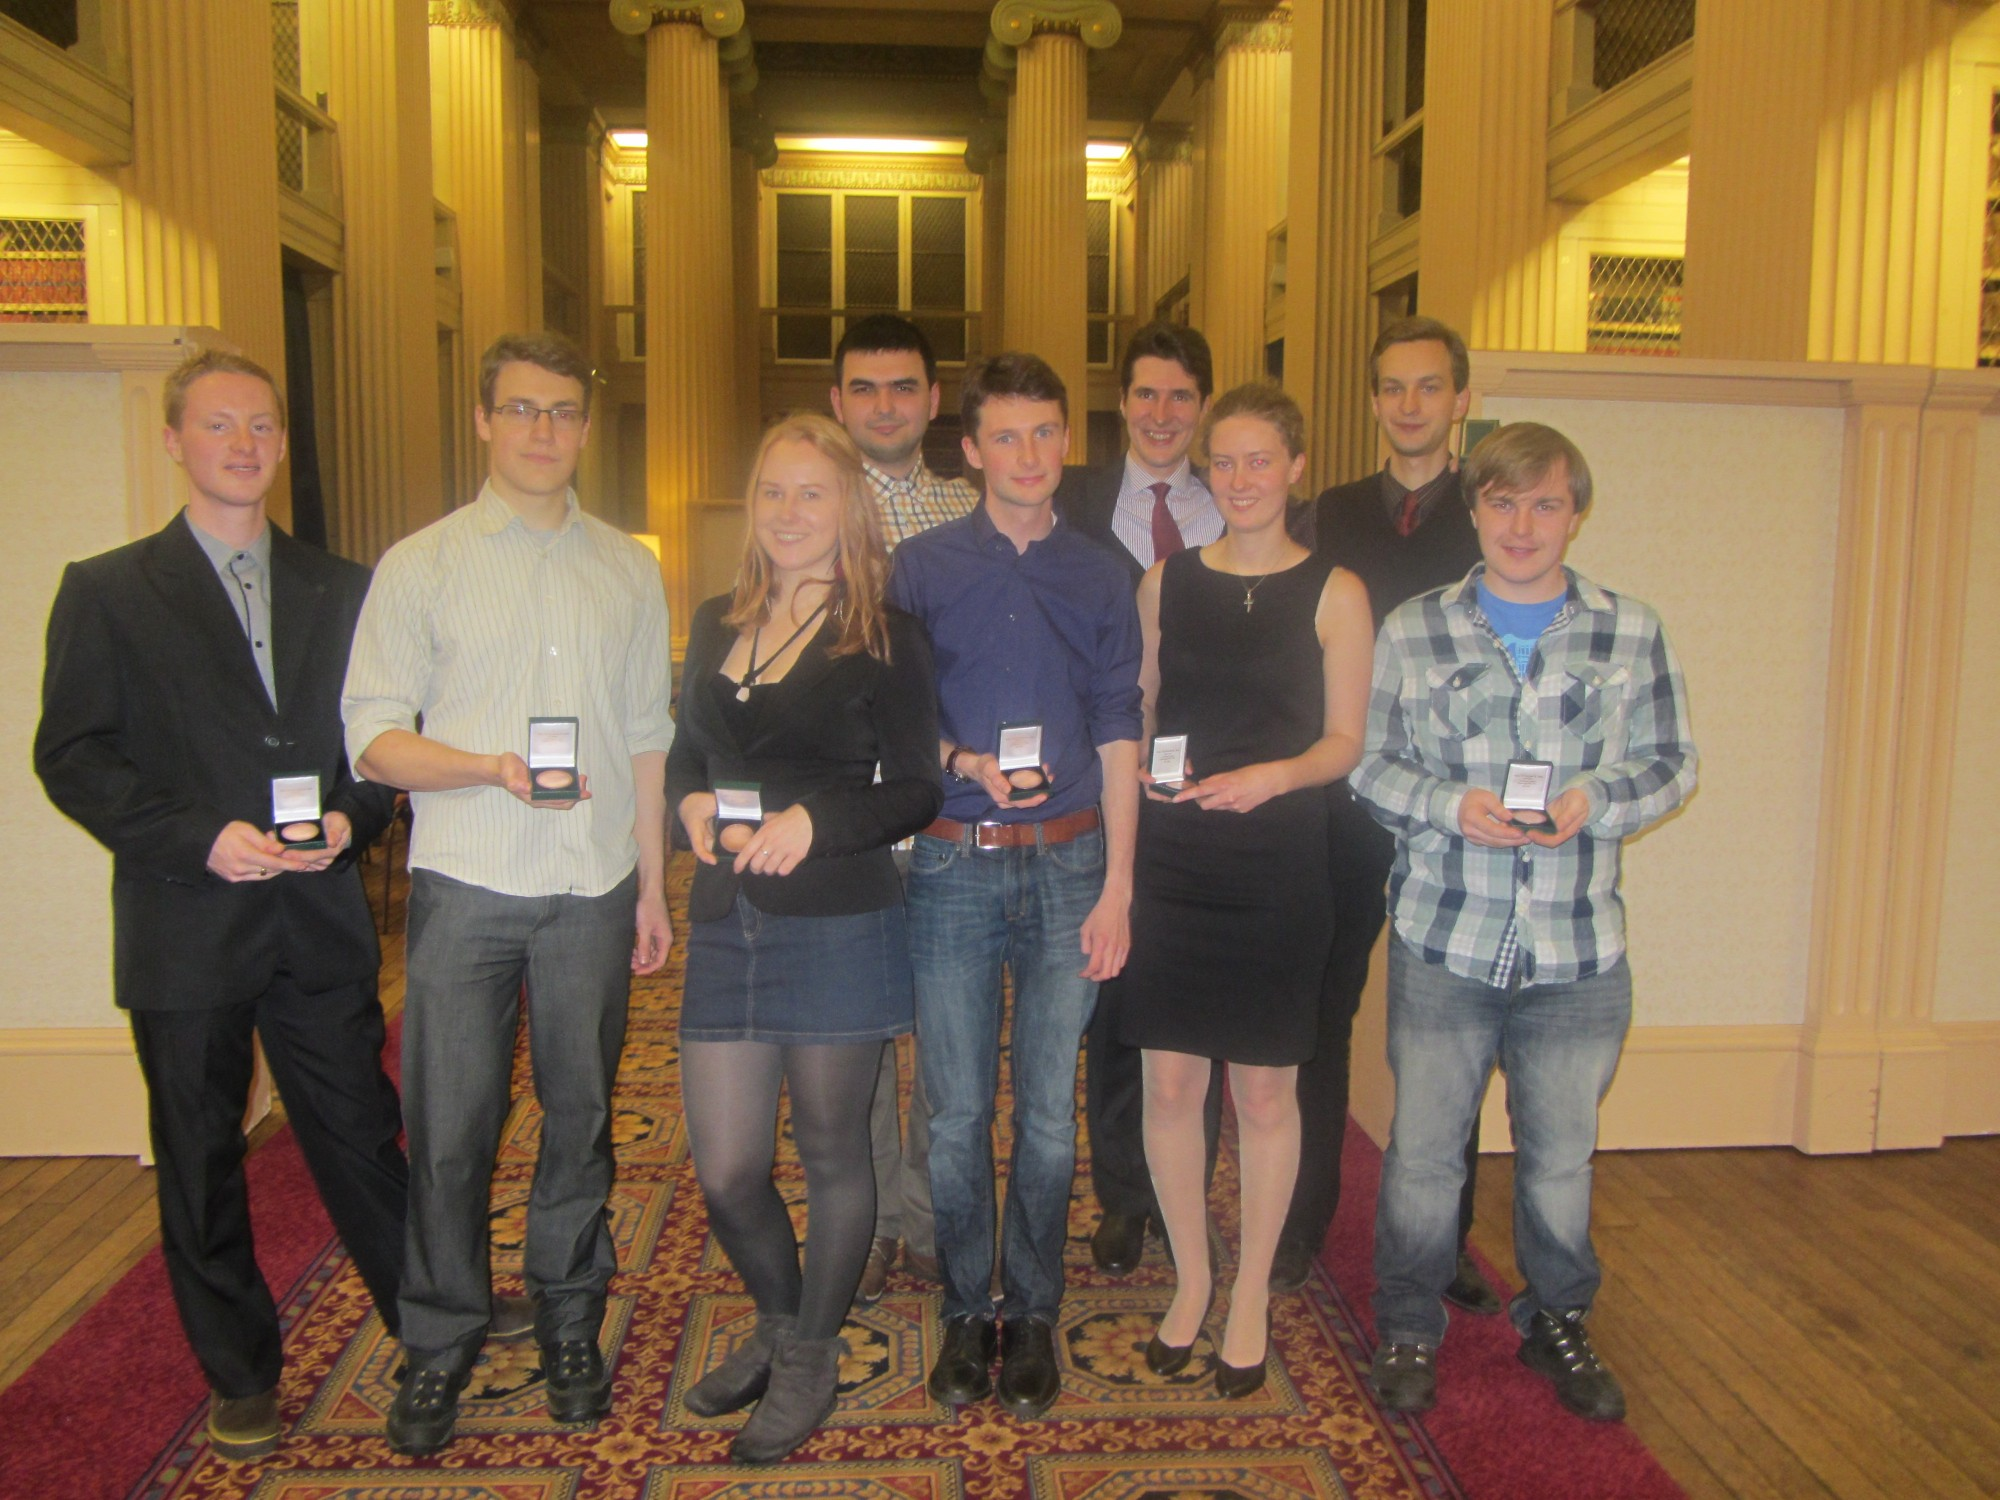 Award recipients from the School of Physics & Astronomy.